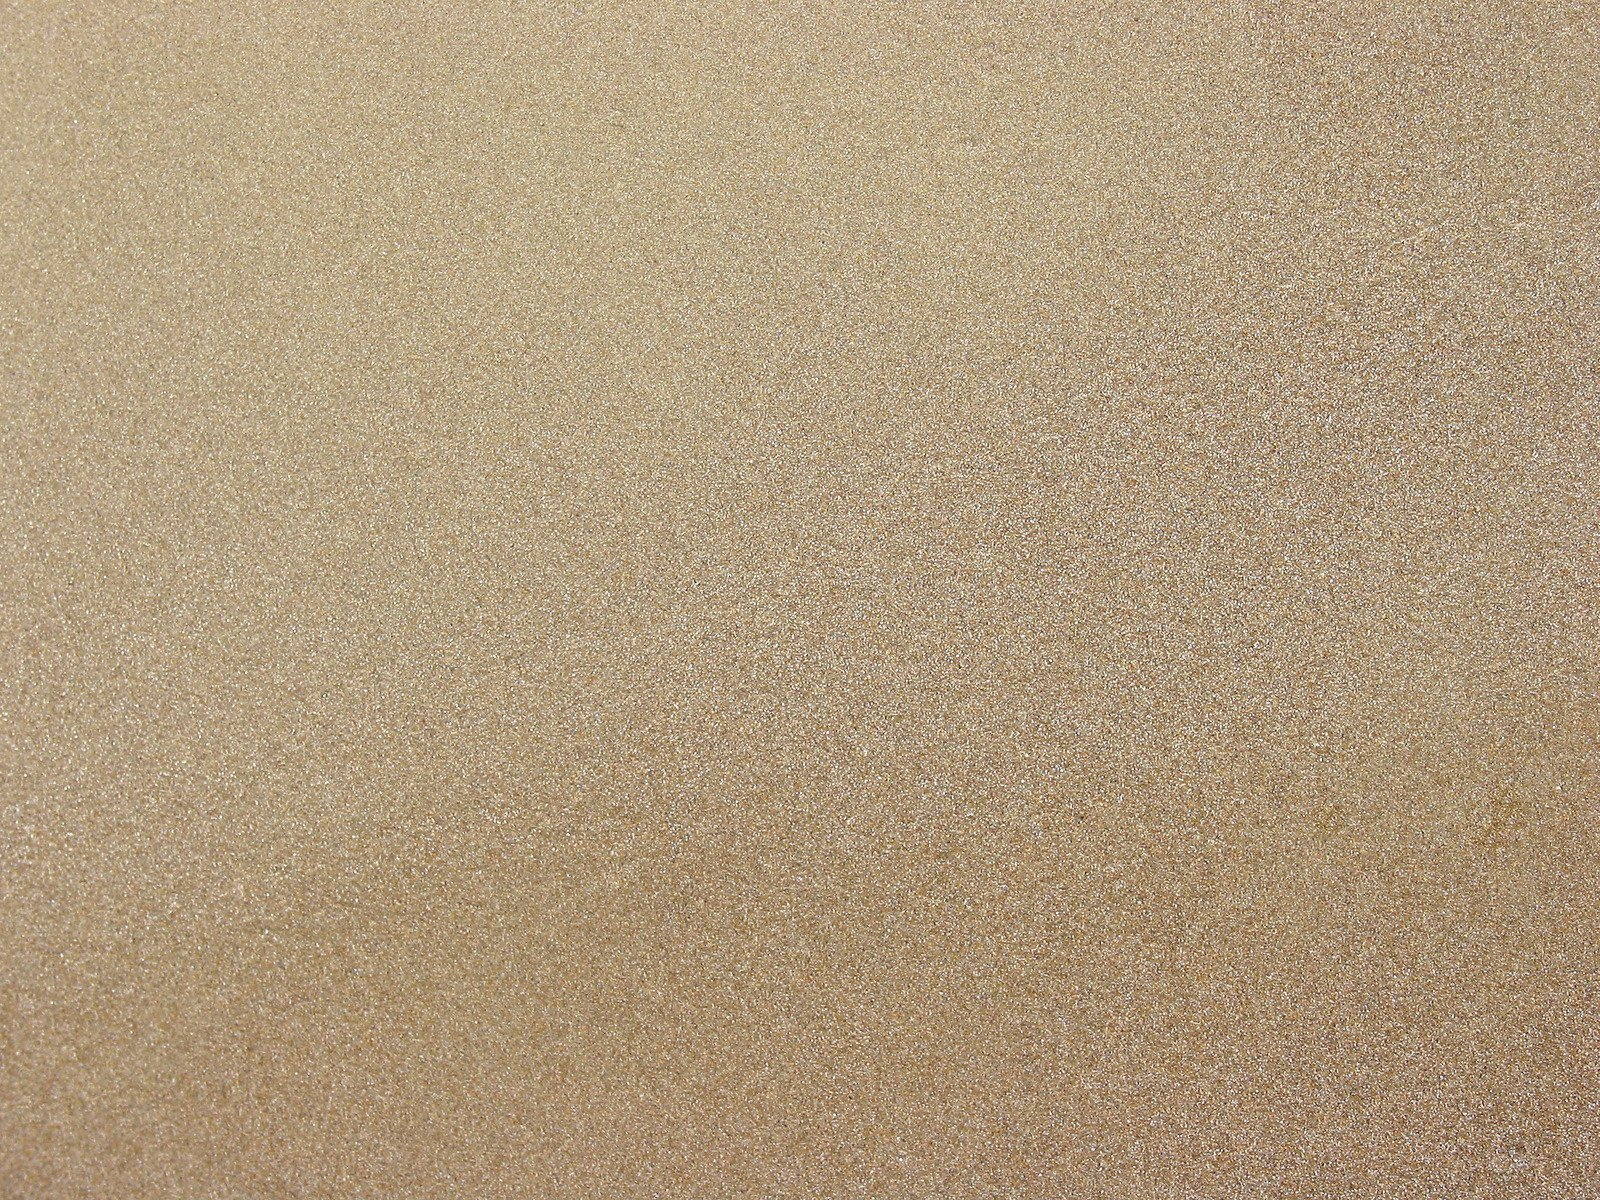 Sand Beige Car Paint